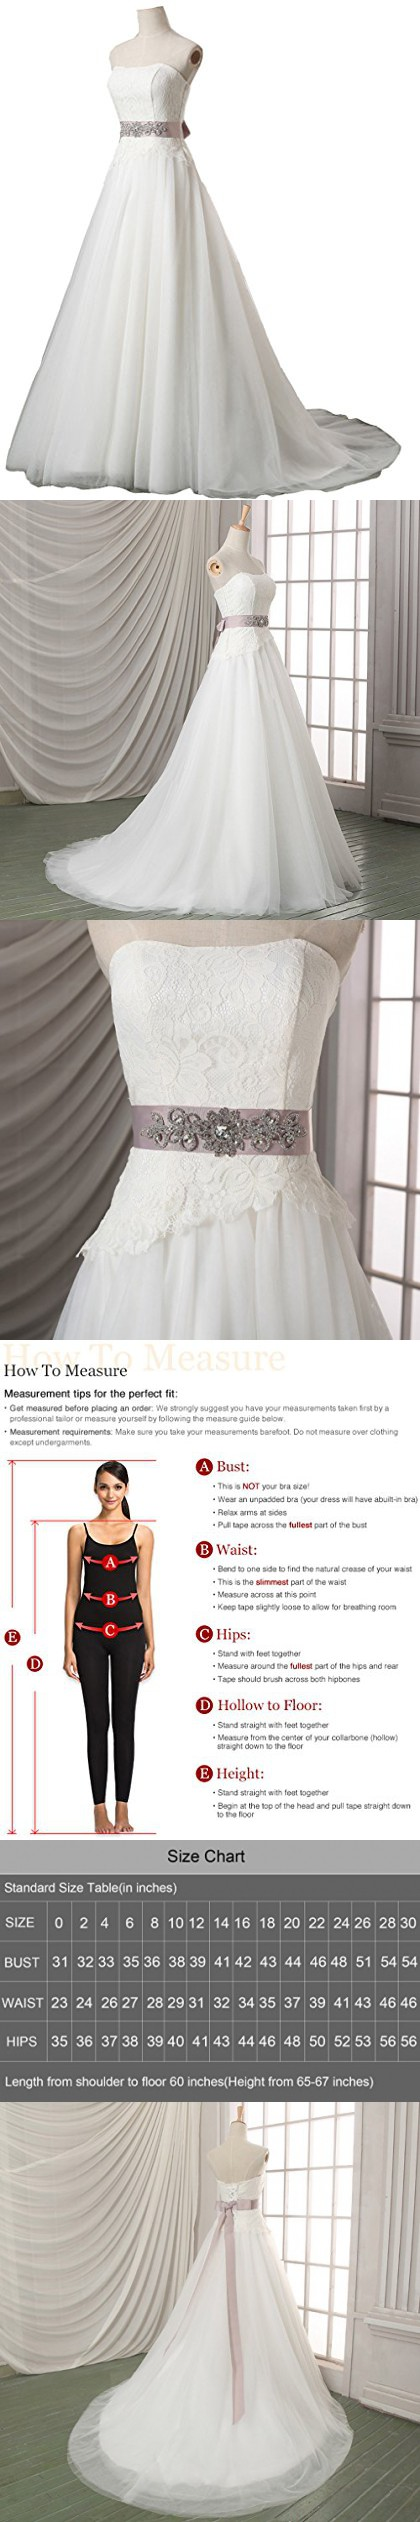 Best wedding dress for size 20  Snowskite Womens Aline Strapless Sweetheart Lace Tulle Wedding